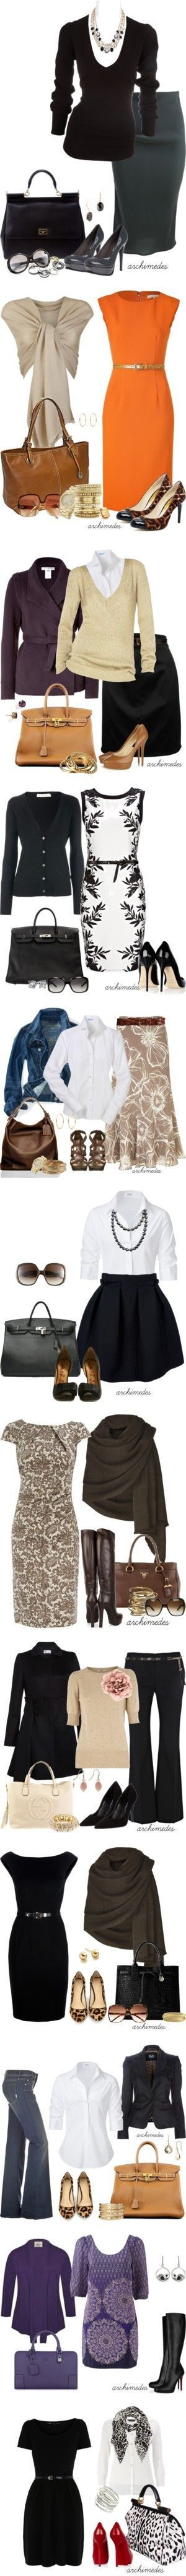 """""""Office Attire"""" by archimedes16 on Polyvore"""